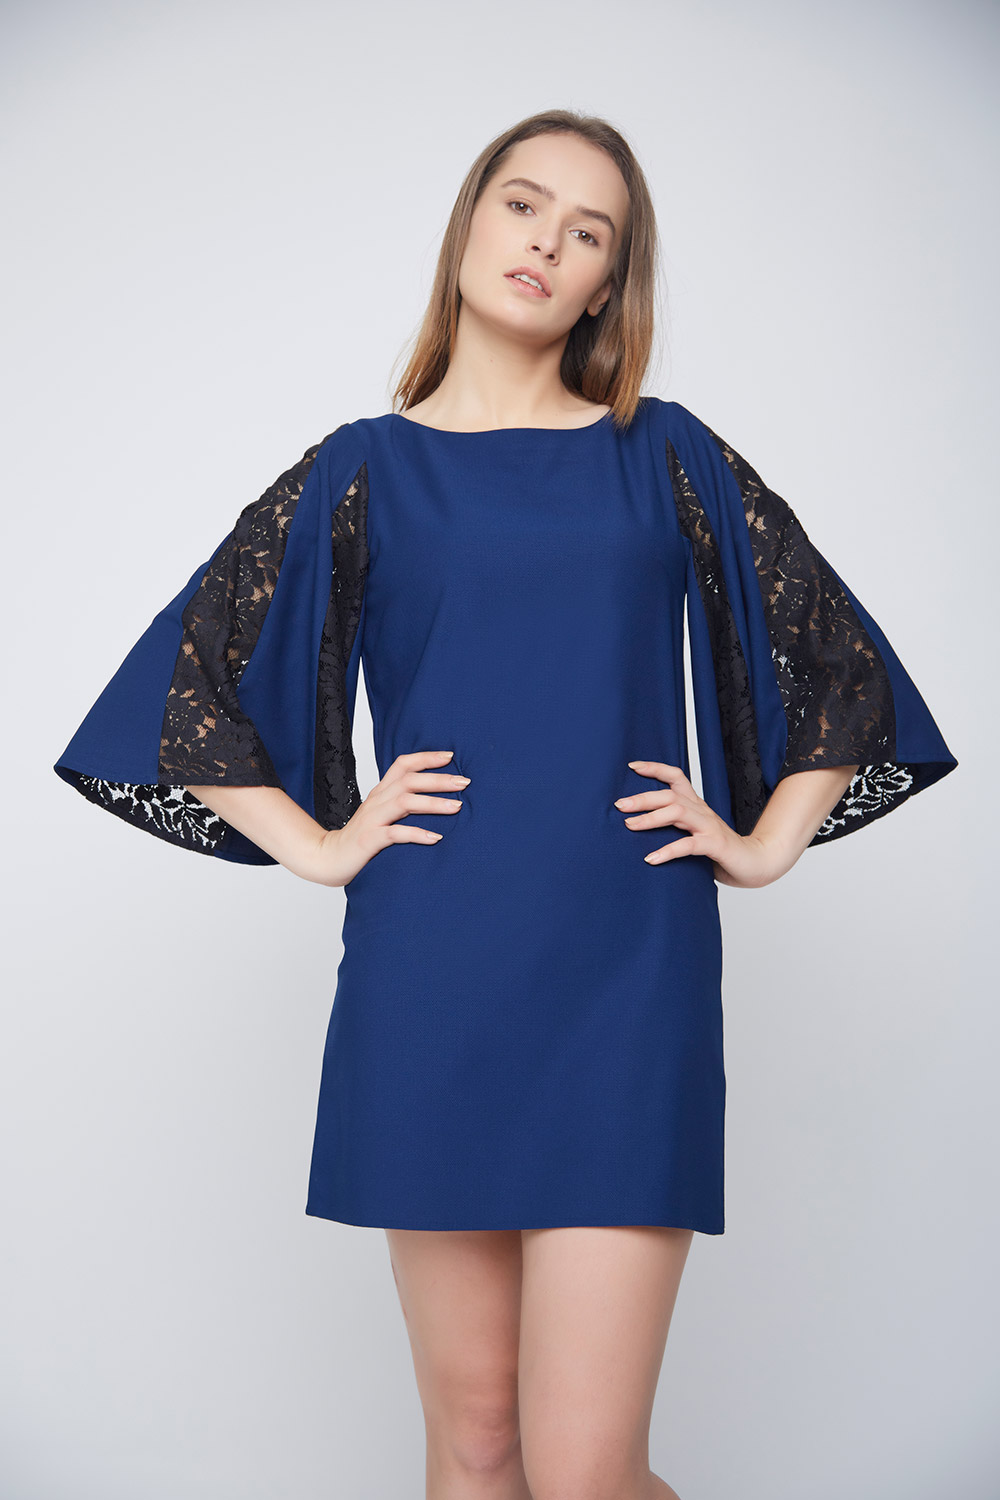 Blue Dress Black Net Pannel Sleeves -1